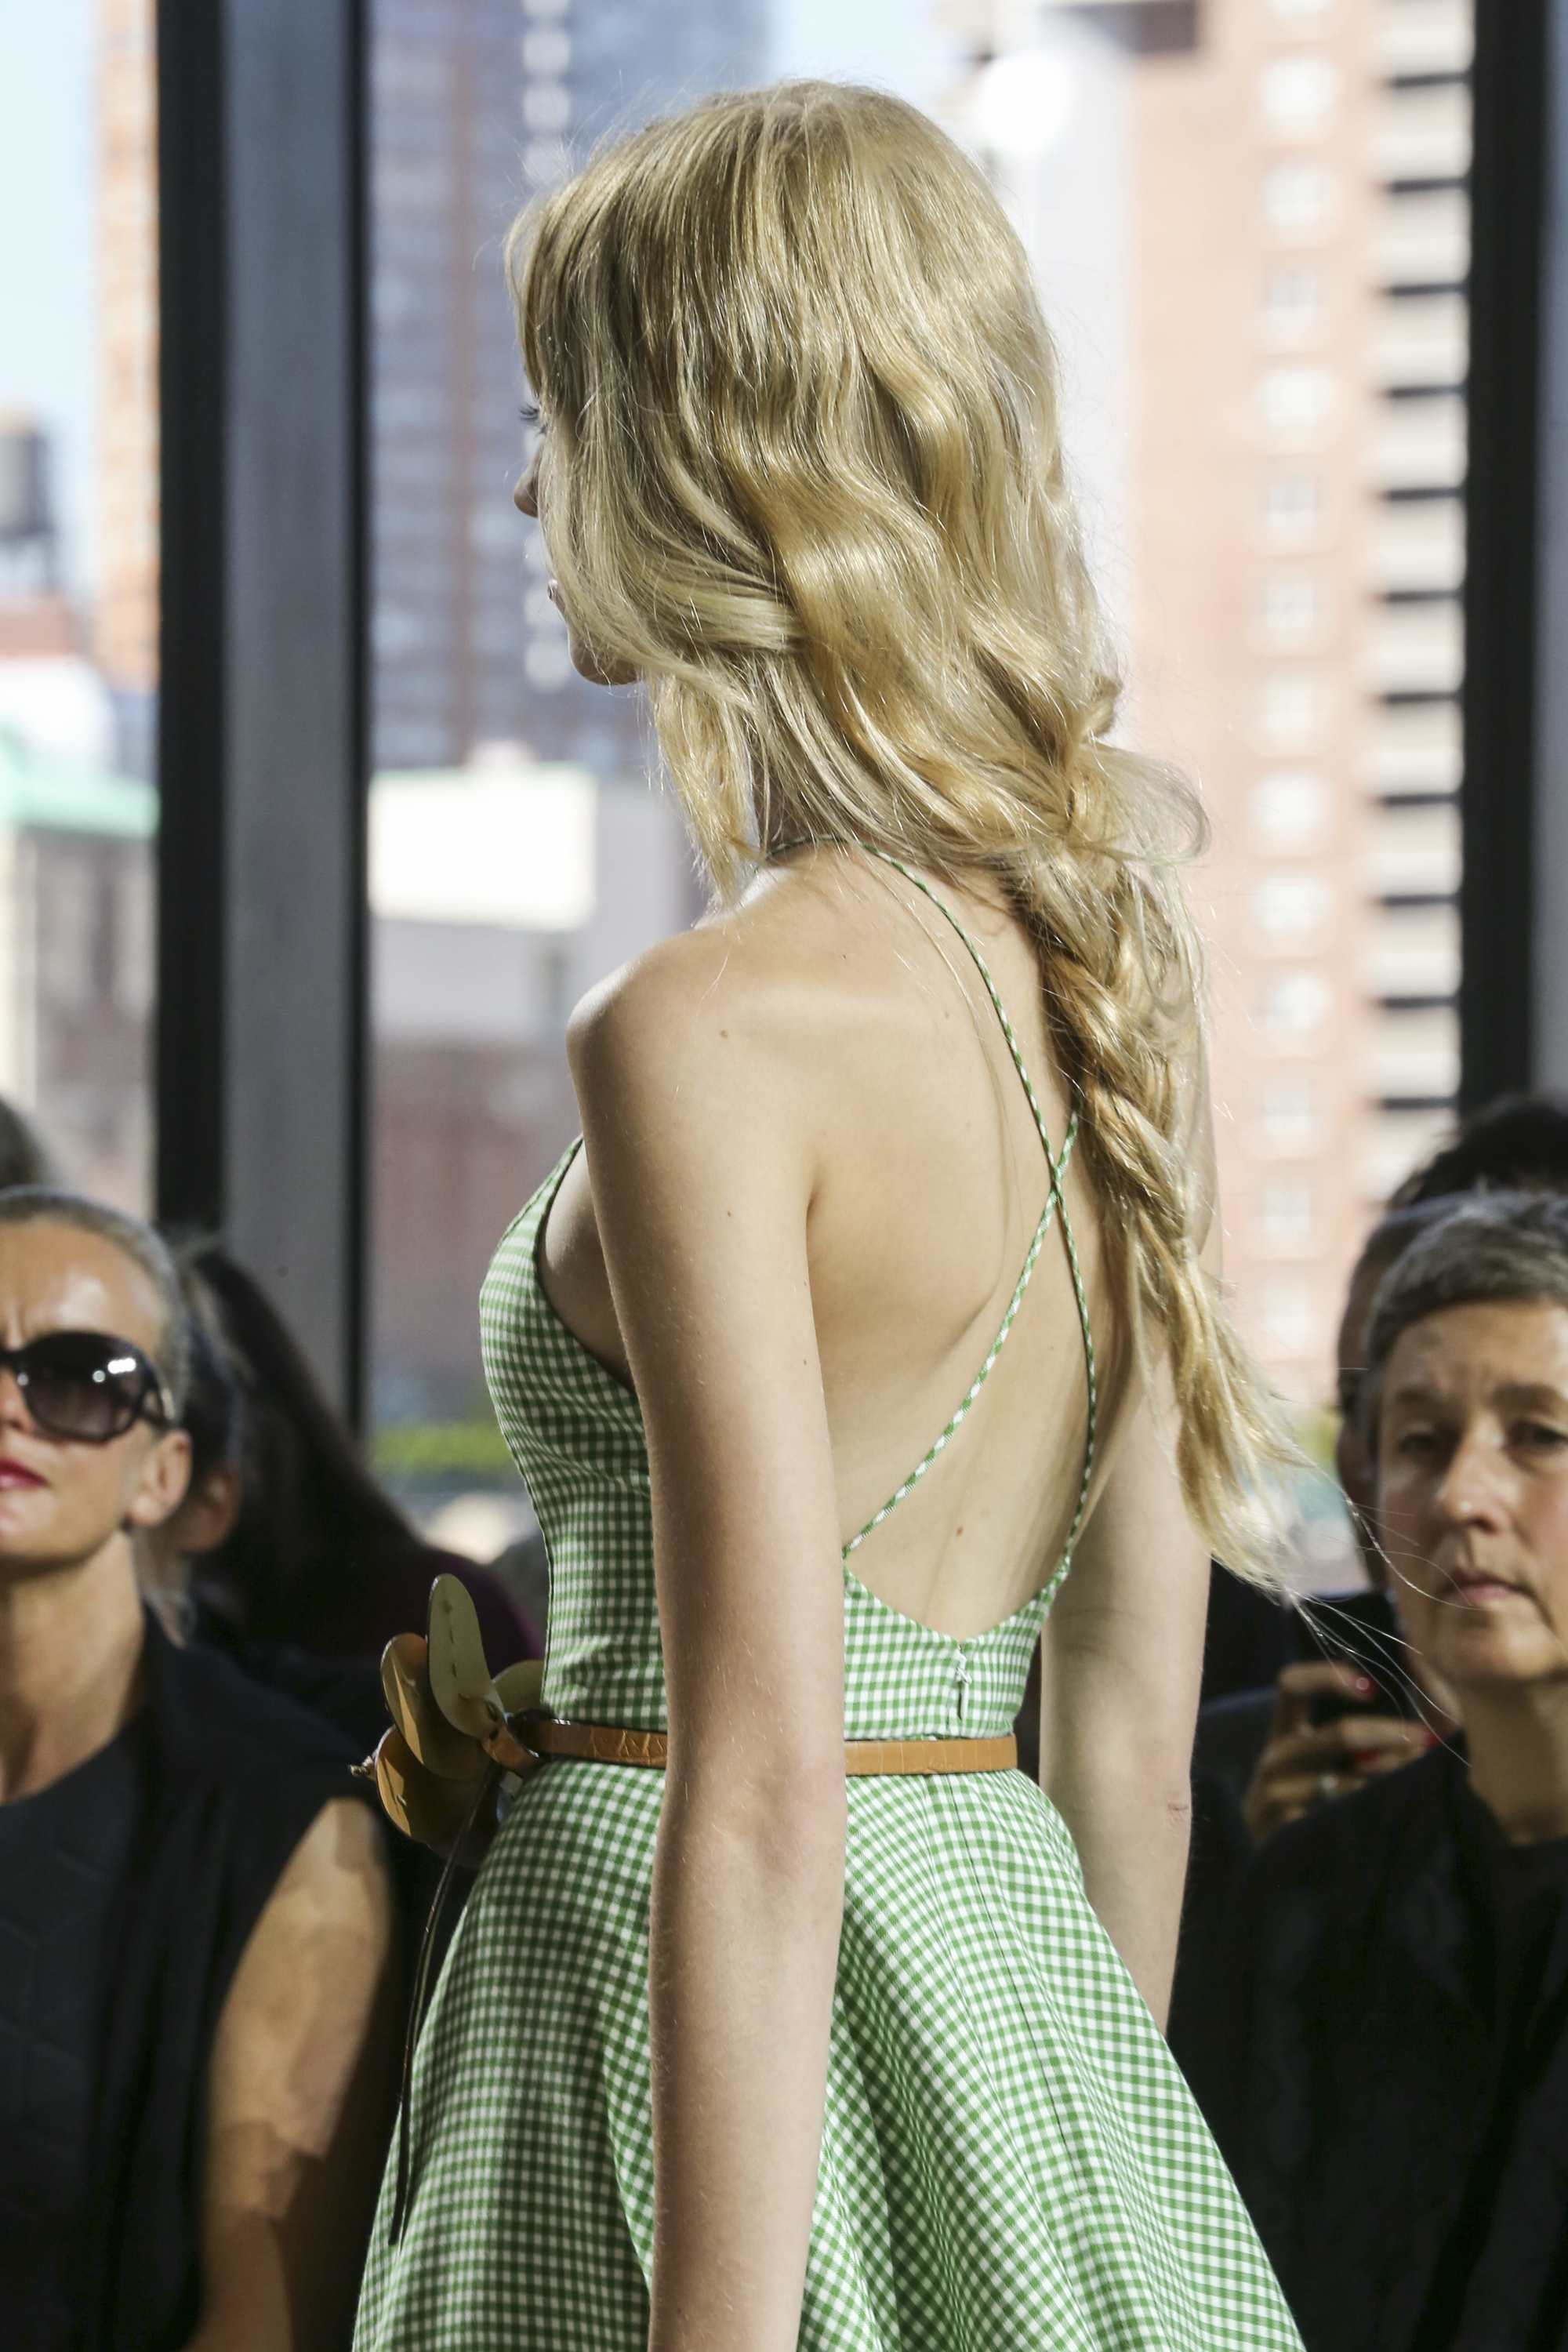 runway shot of a blonde model with a loose braid